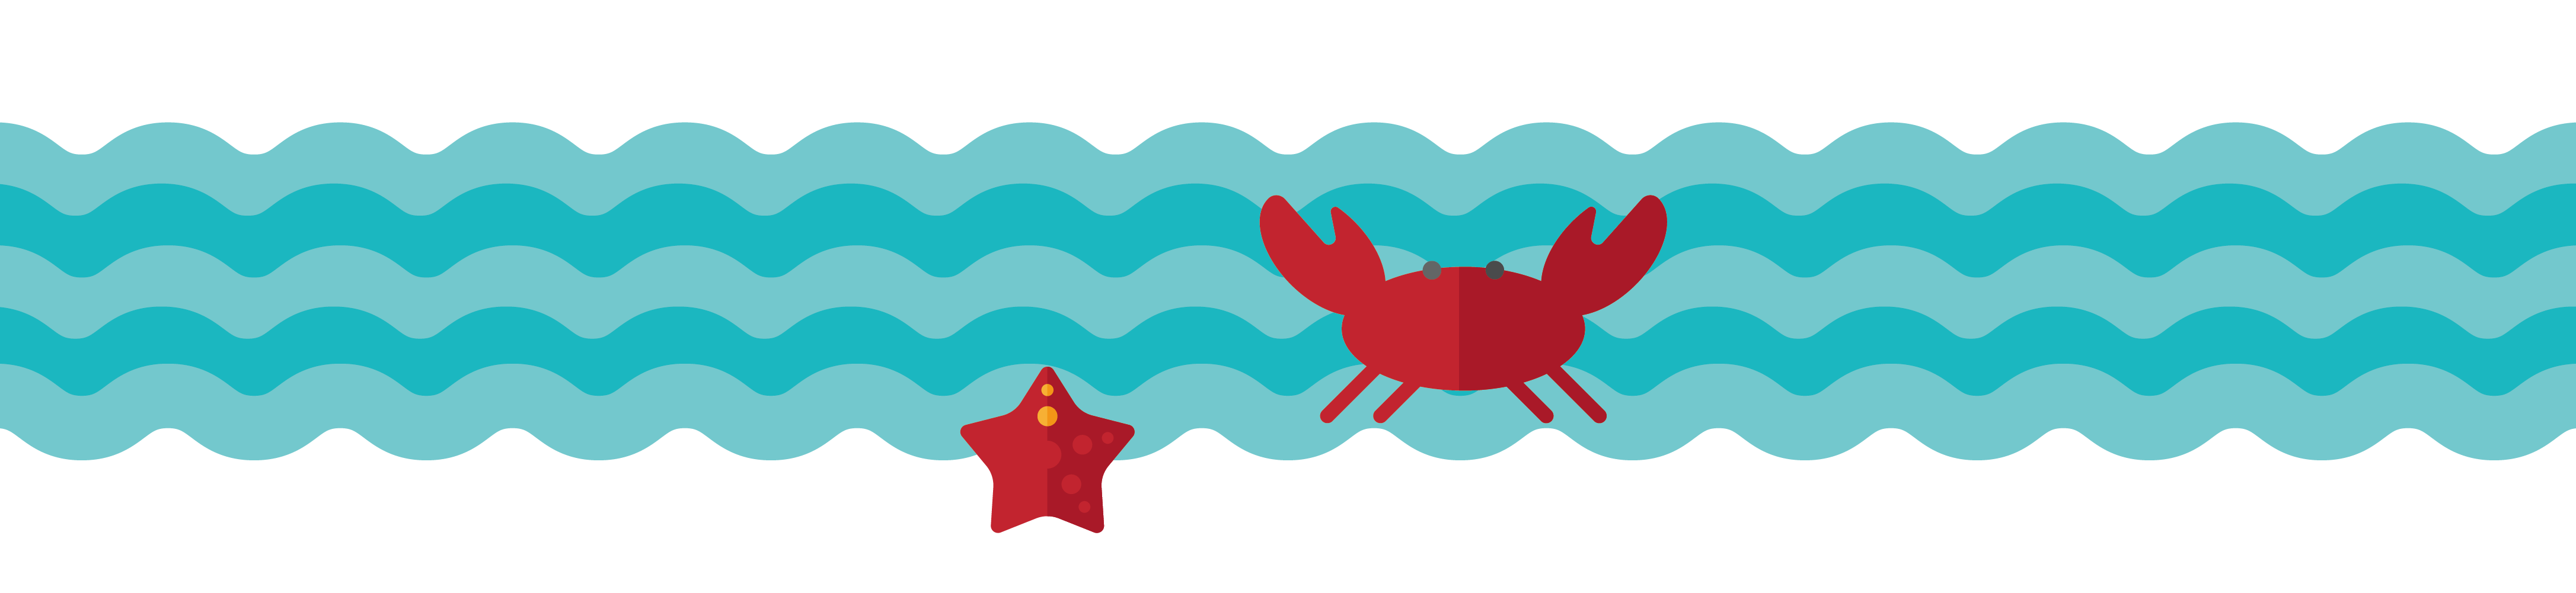 Crabs clipart symmetry. Beach sea watercolor painting